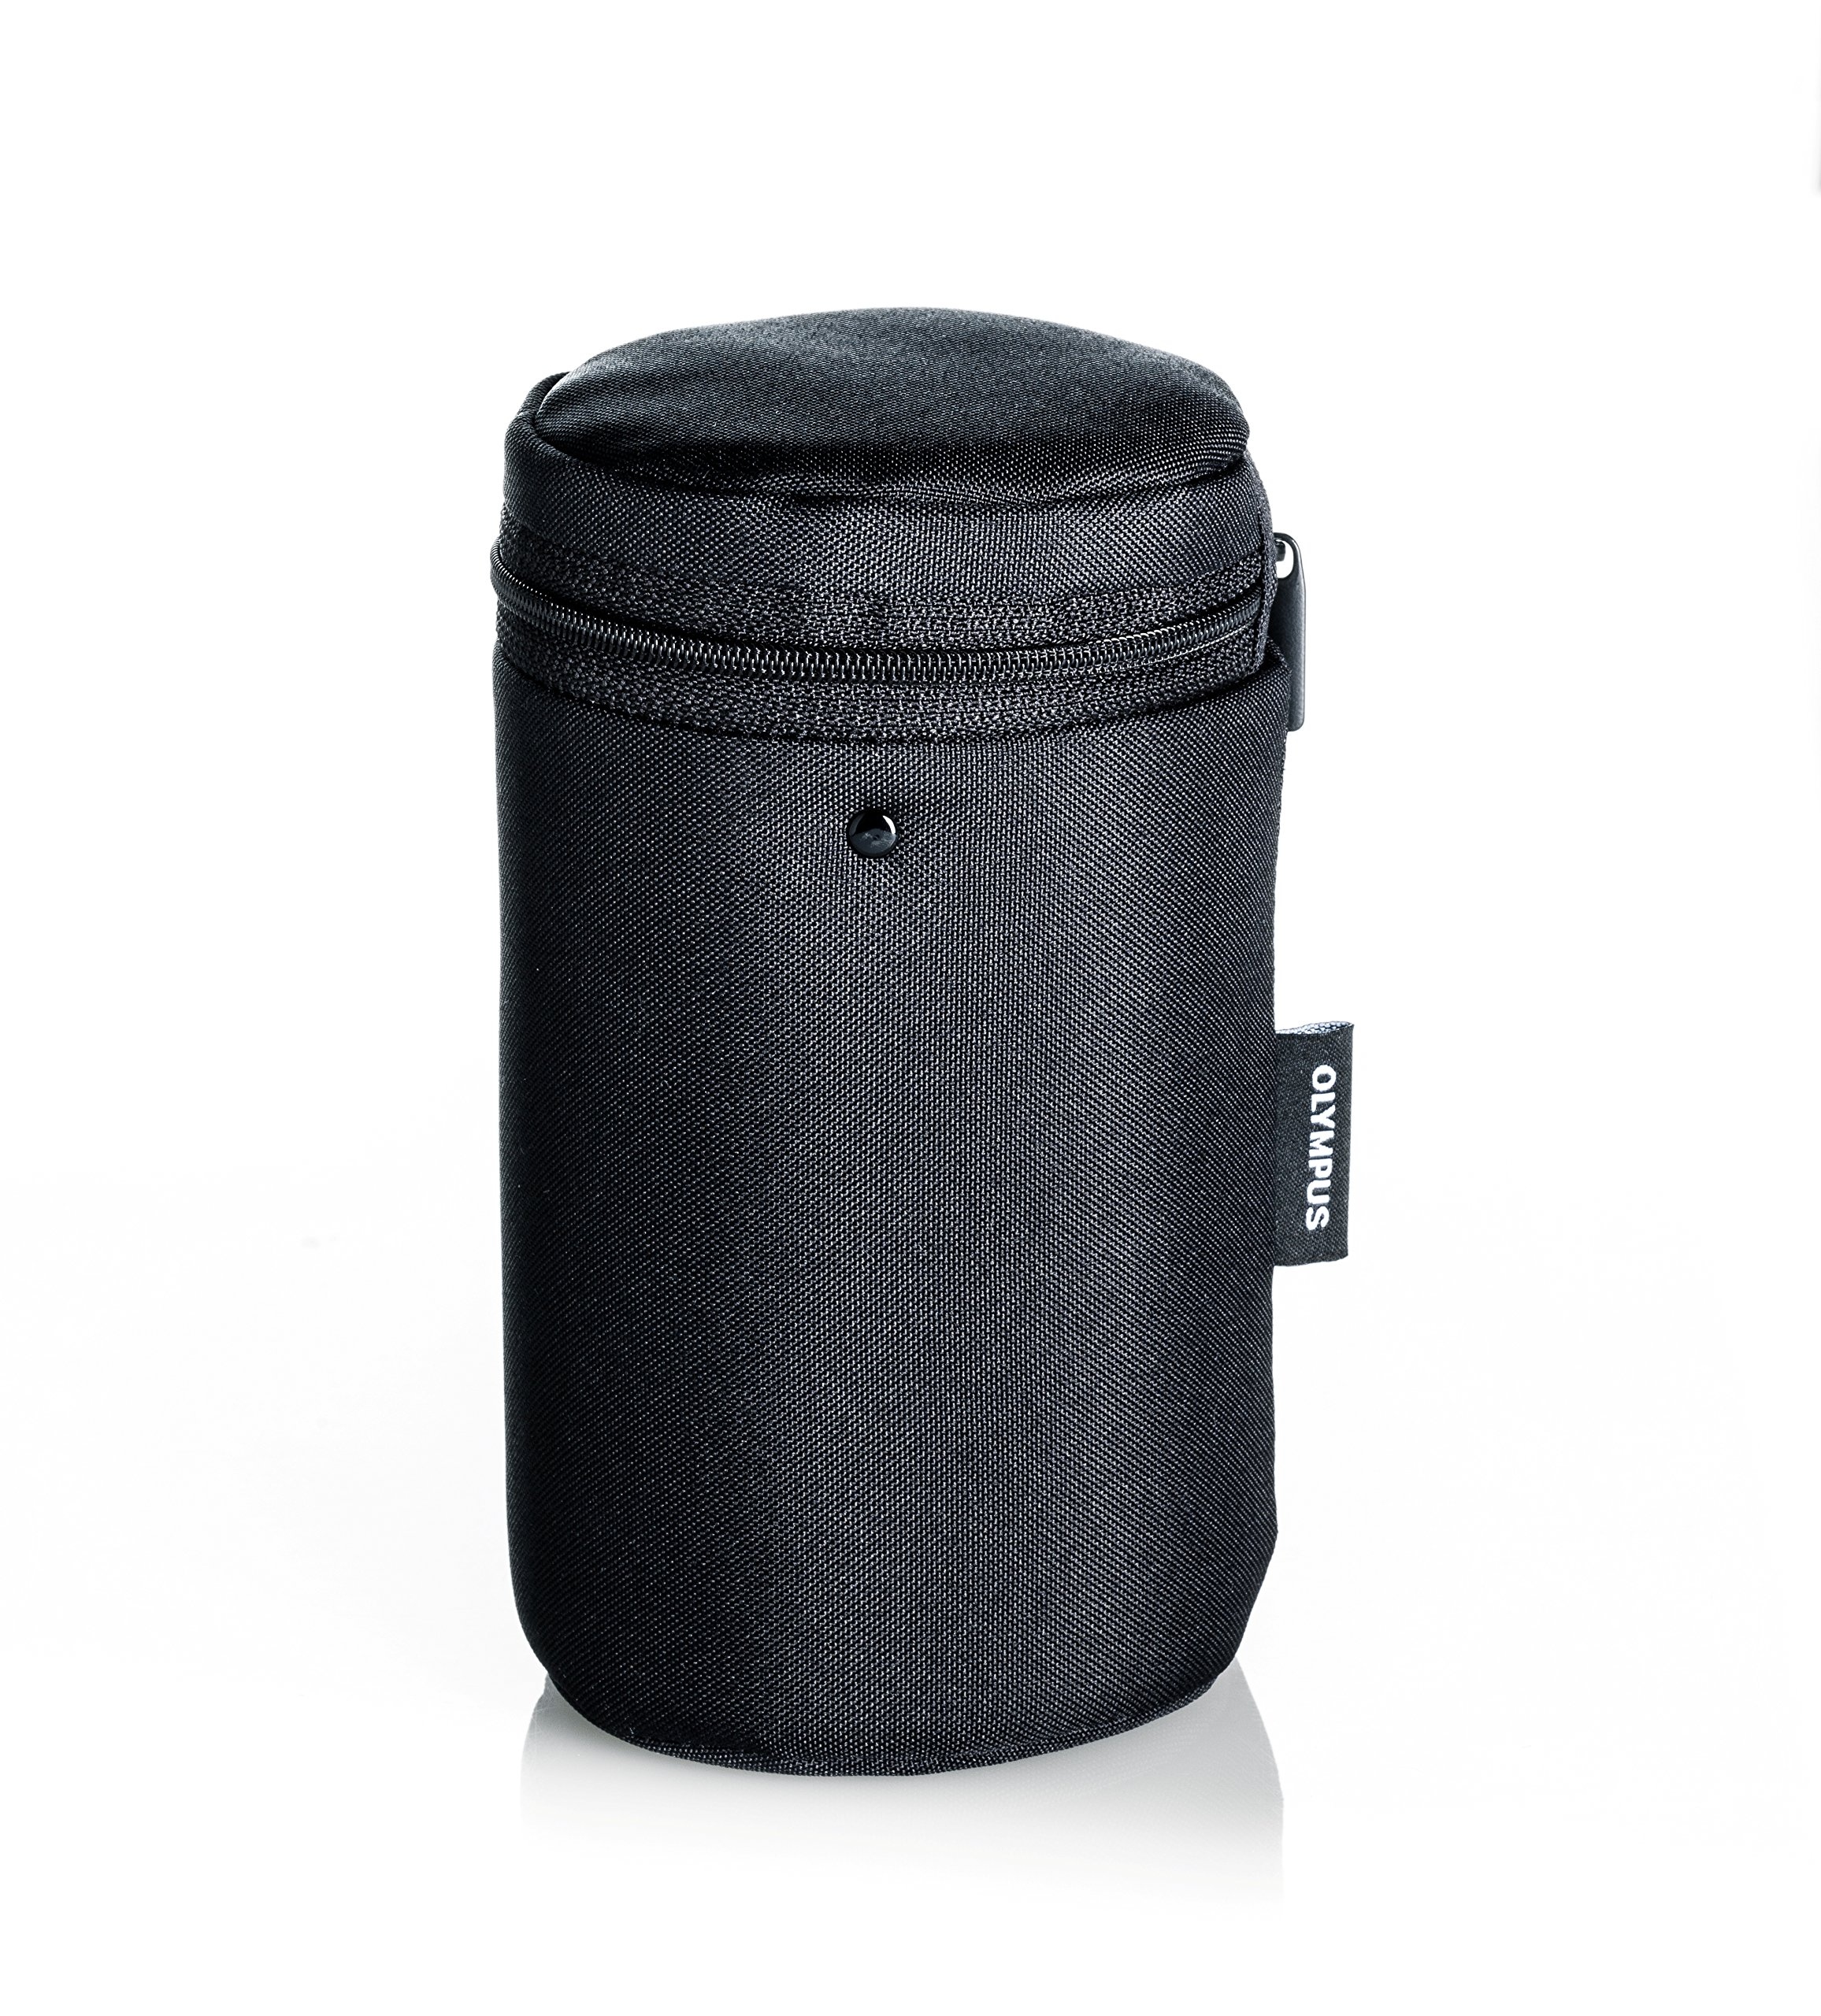 Olympus Barrel Style Lens Case - Medium (Black) by Olympus